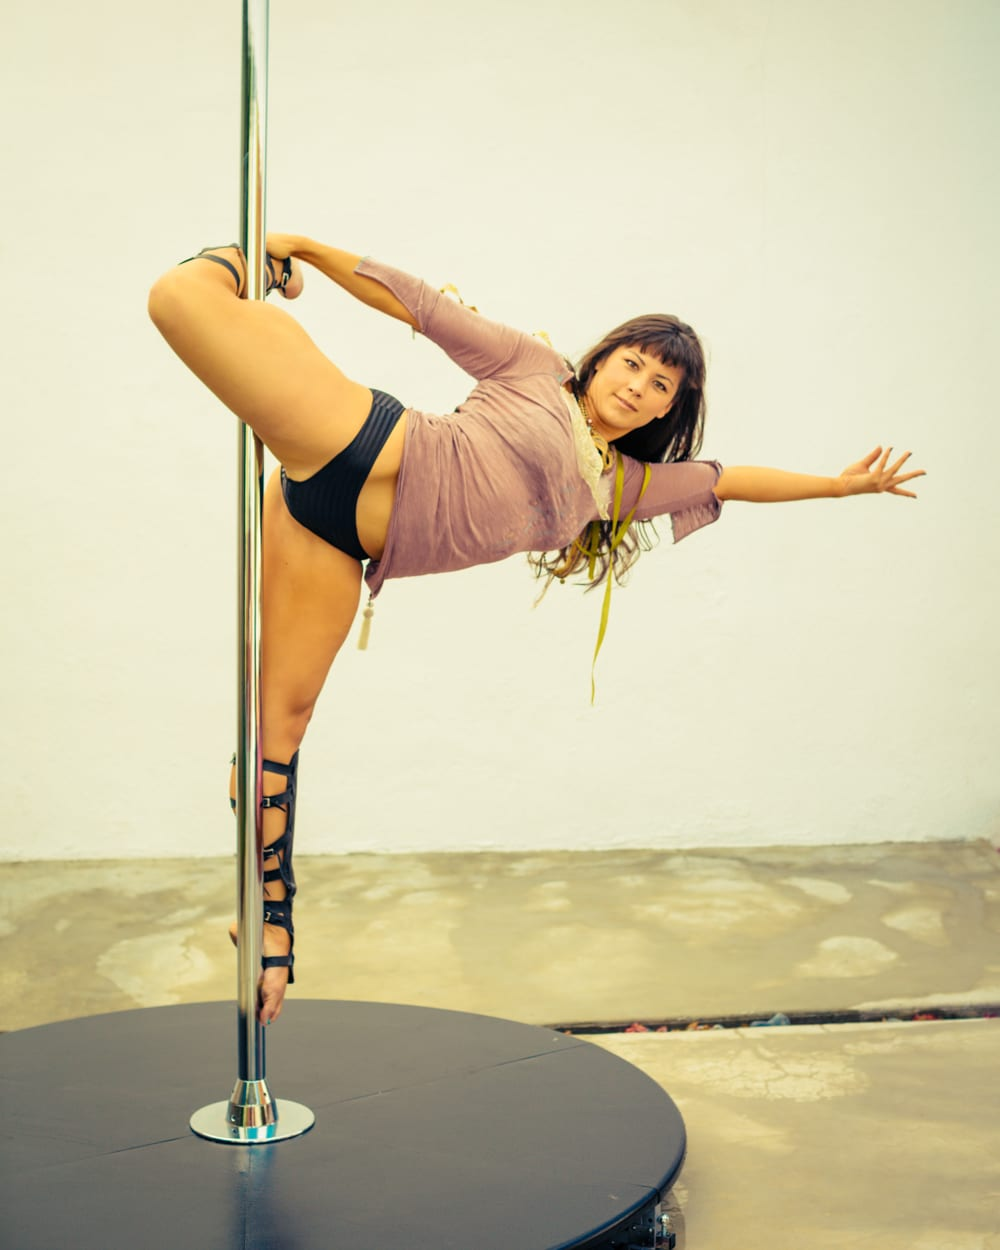 pole_couture_photos_by_gregory_beylerian-9